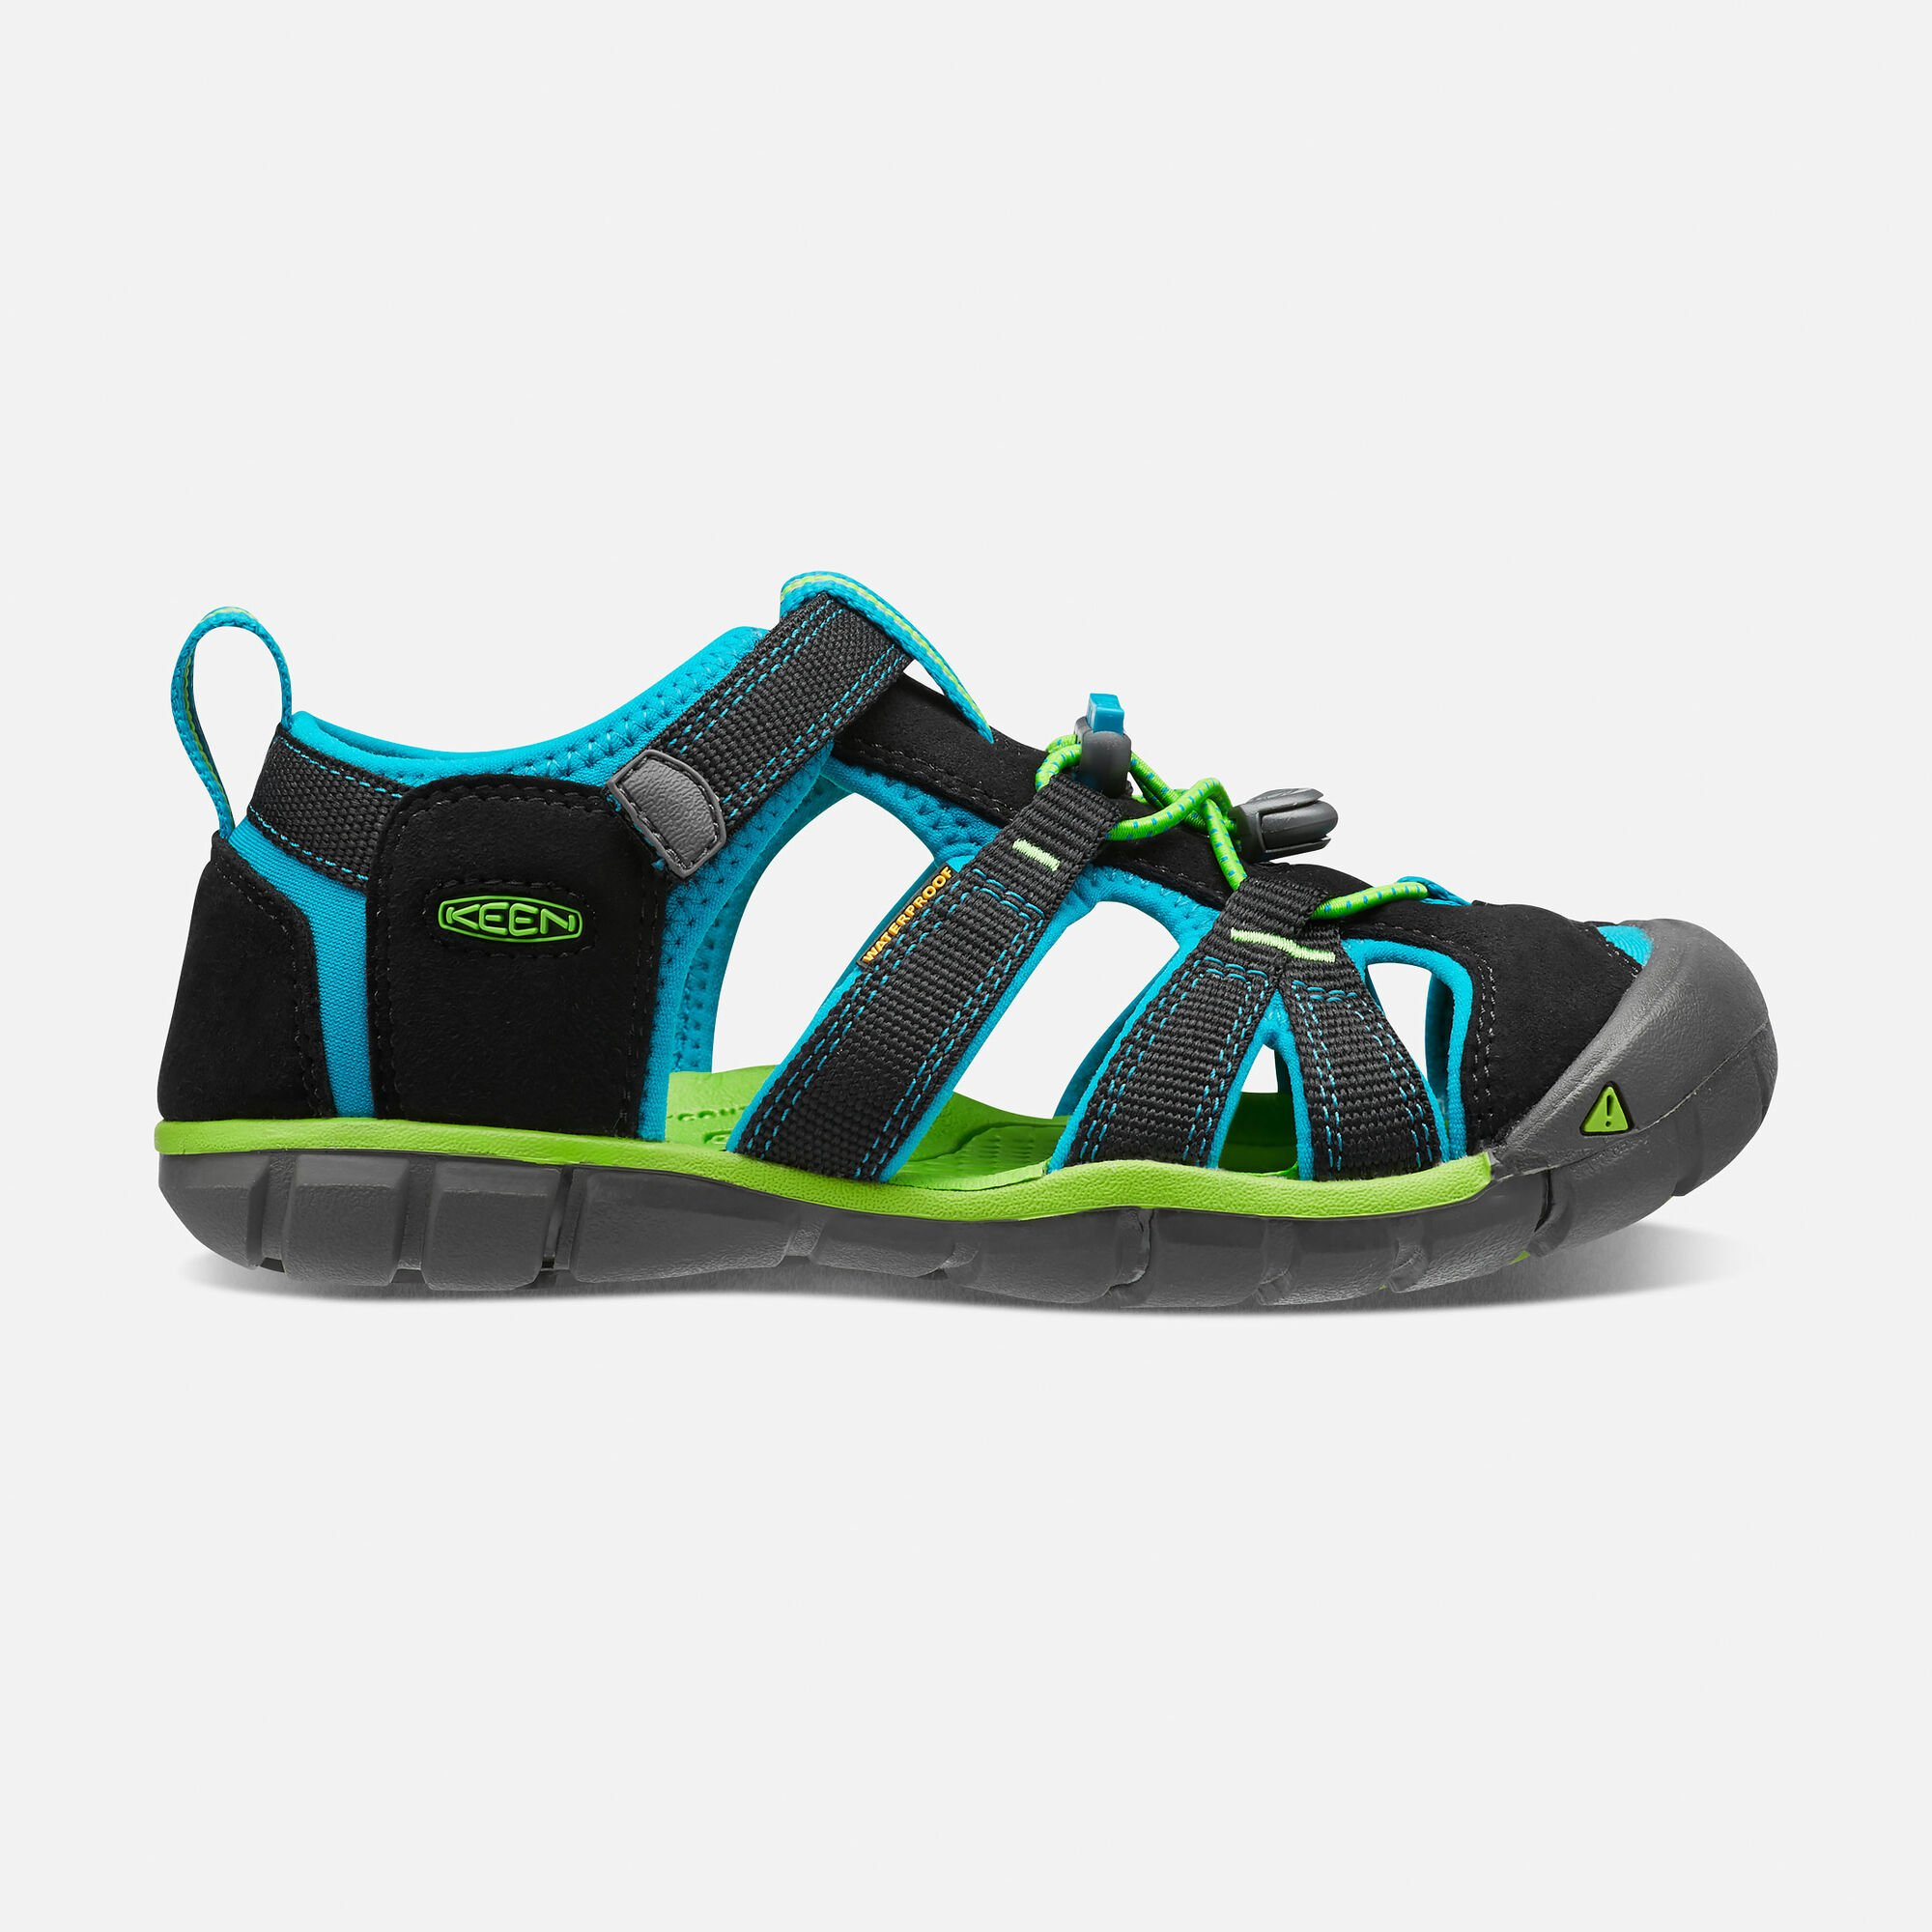 6164bfd01e4d9 ... Children s Shoes  Big Kids SEACAMP II CNX in BLACK BLUE DANUBE - small  view. to buy c1878 ...